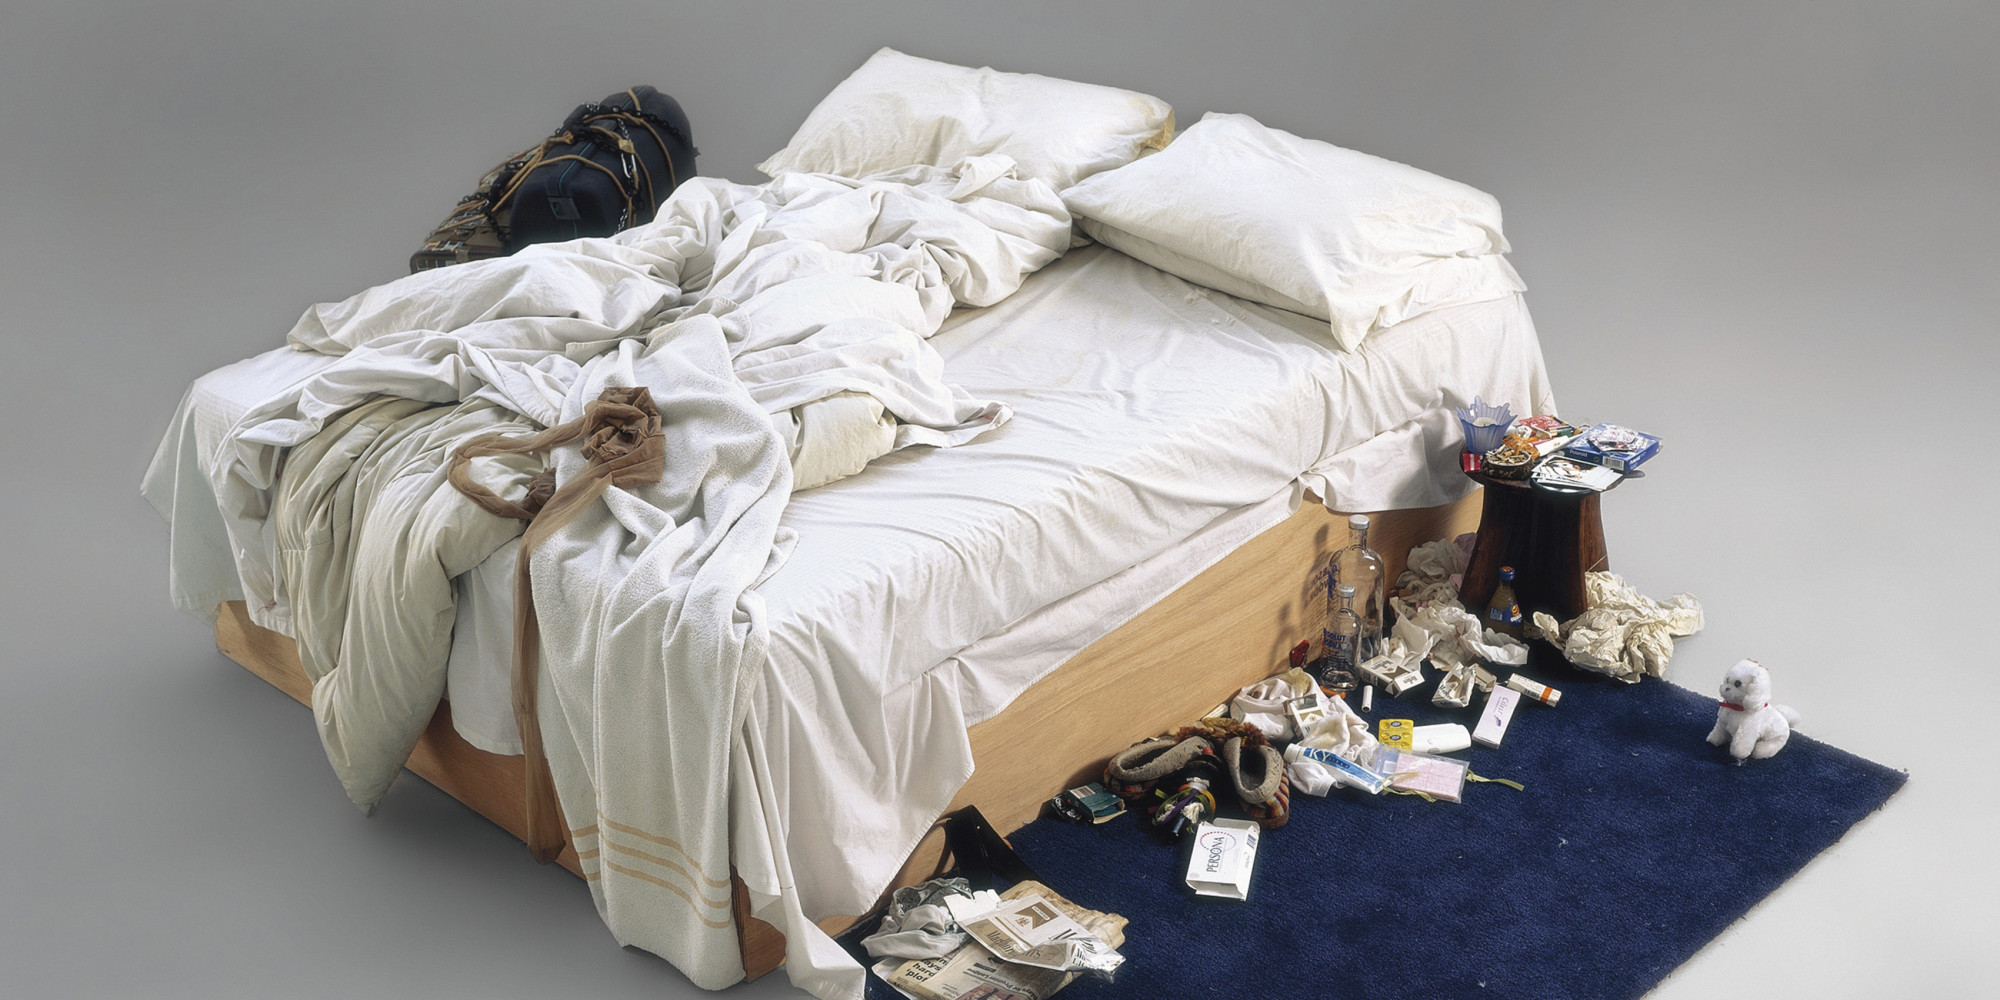 My Bed - Tracey Emin